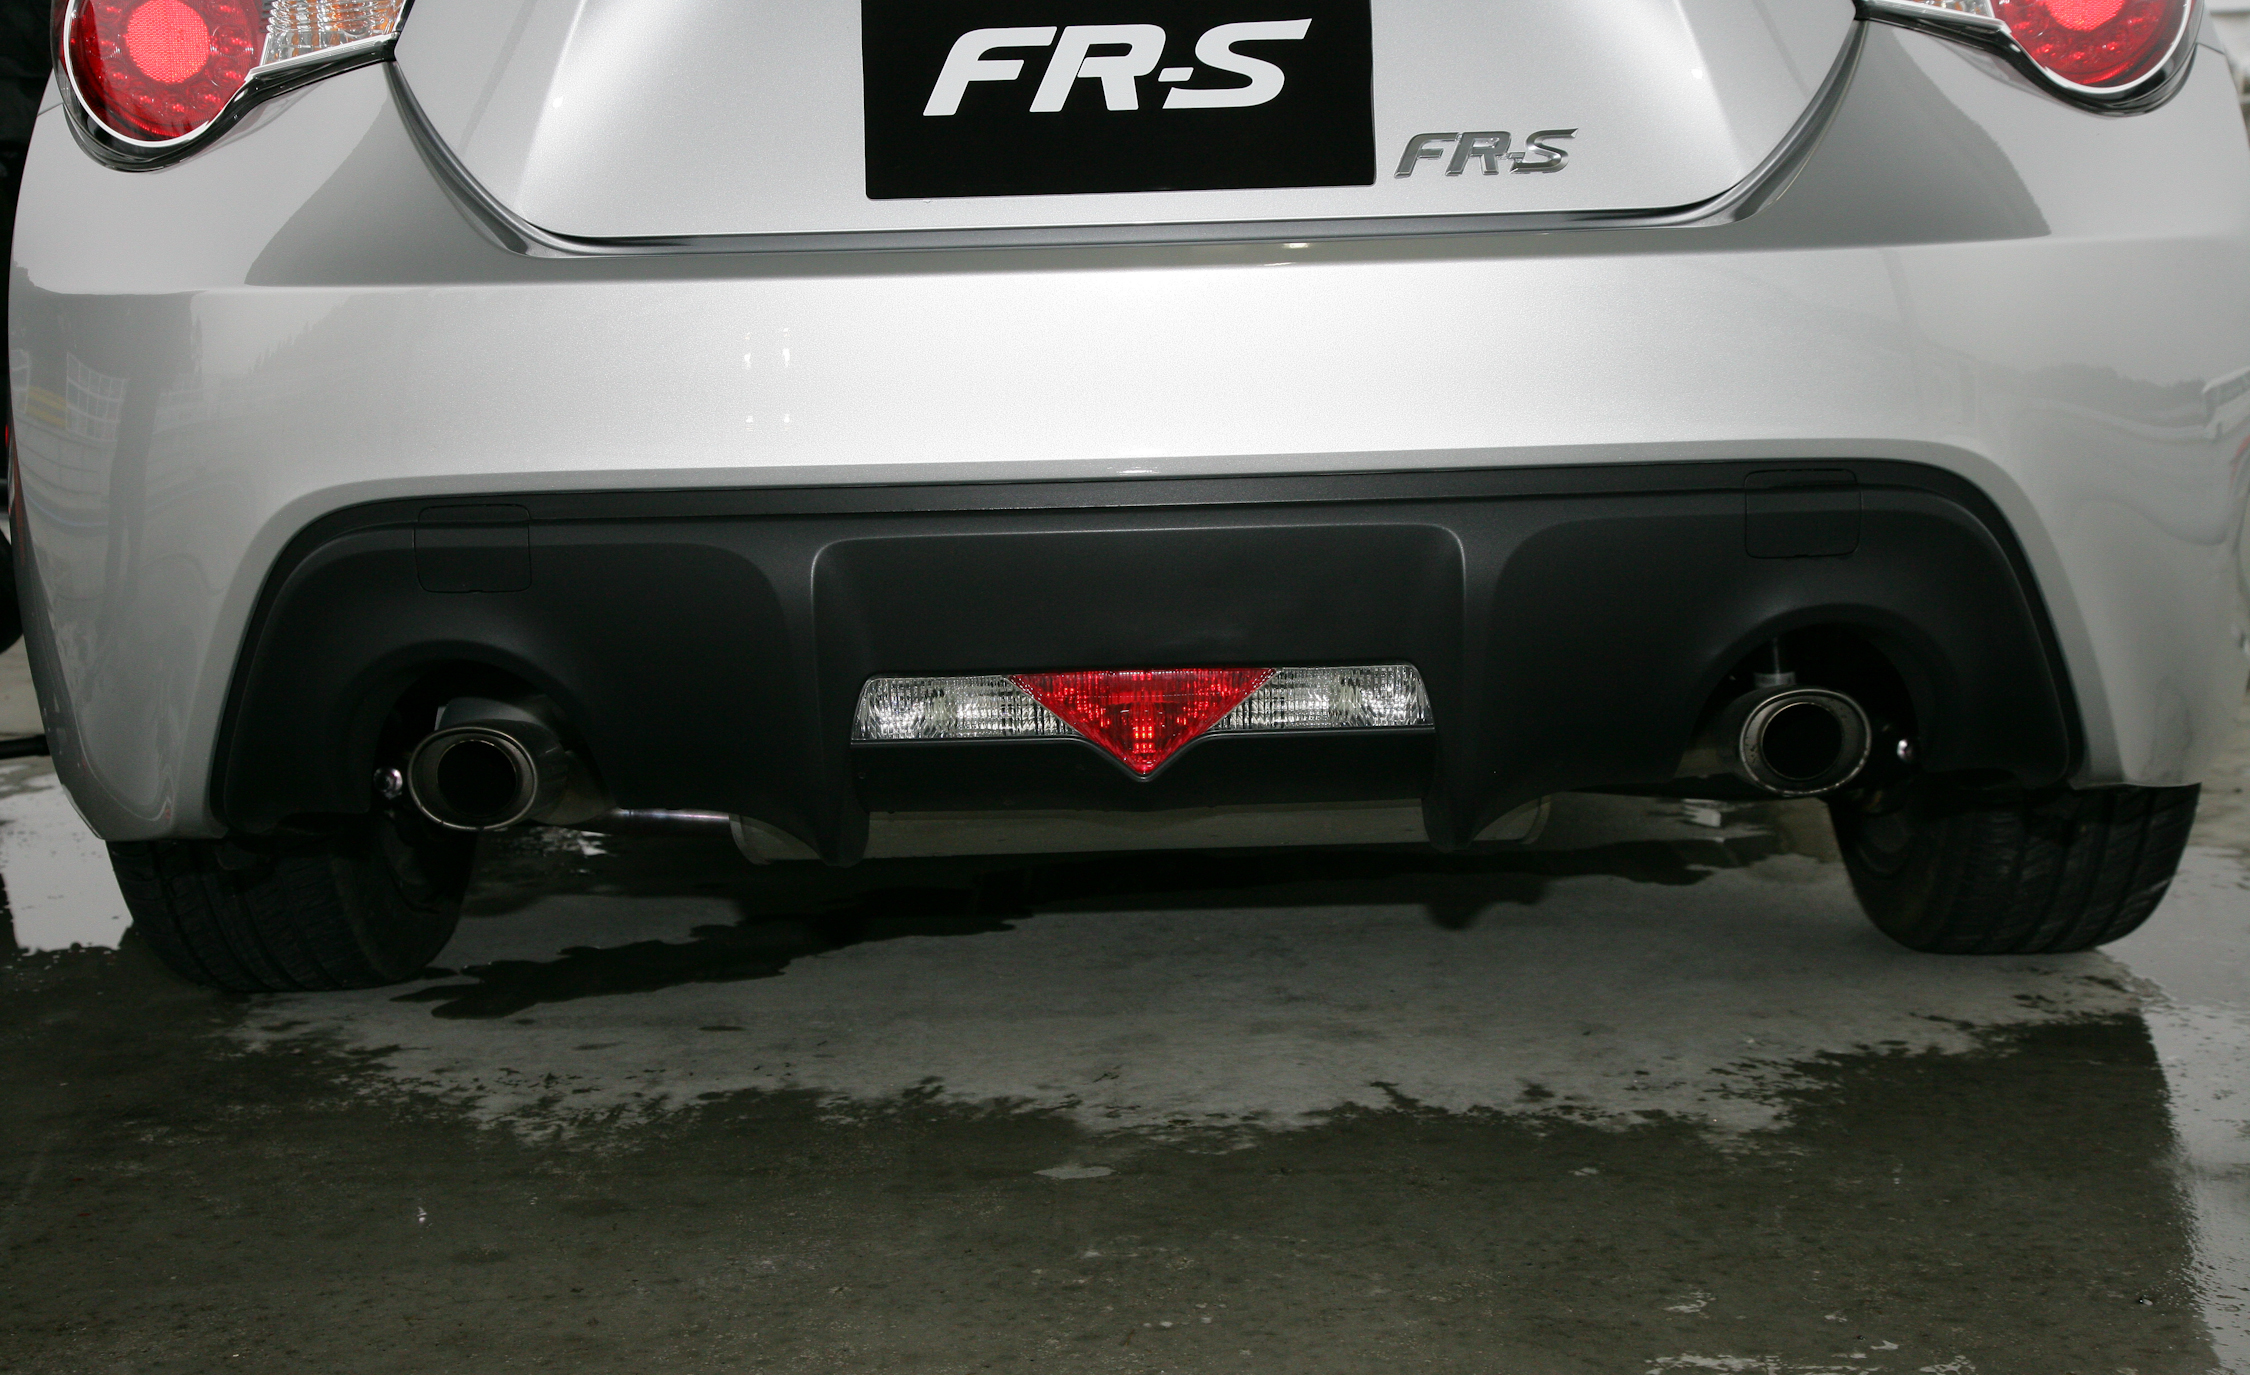 2013 Scion FR S Exterior View Rear Bumper (Photo 13 of 47)